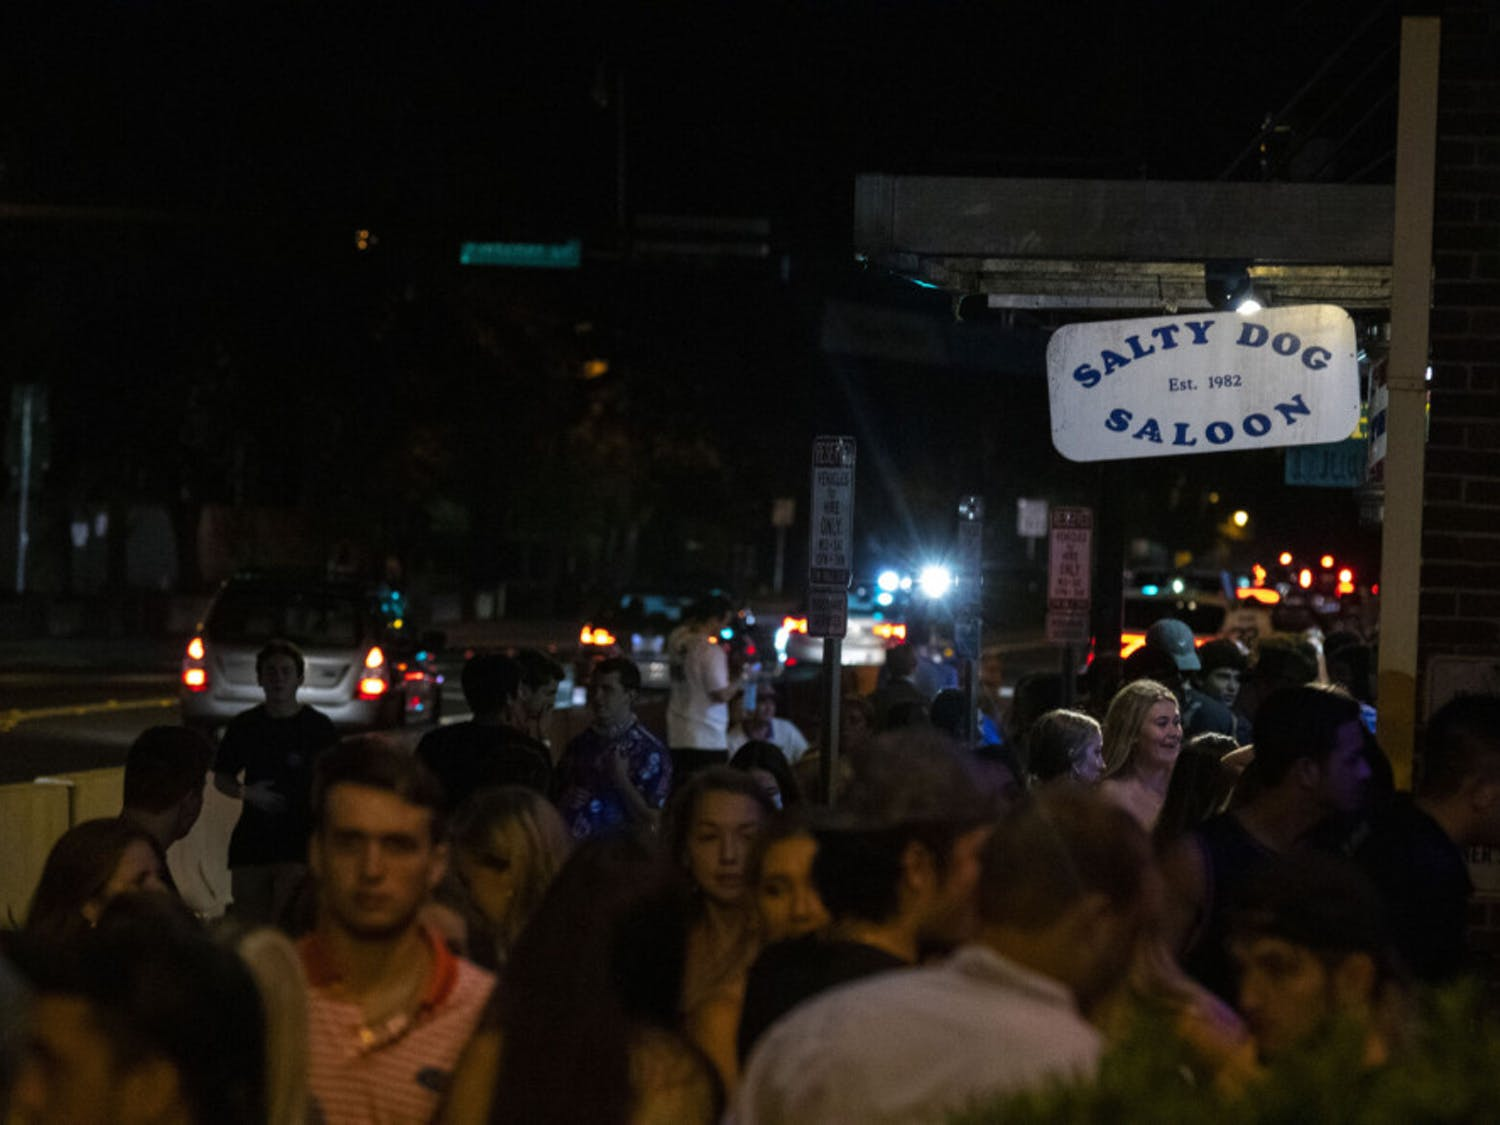 More than 50 people are seen waiting outside next to Salty Dog Saloon and Fat Daddy's, located at Midtown off of West University Avenue, in Gainesville on Saturday night, after the first home football game. (Zachariah Chou/Alligator Staff)